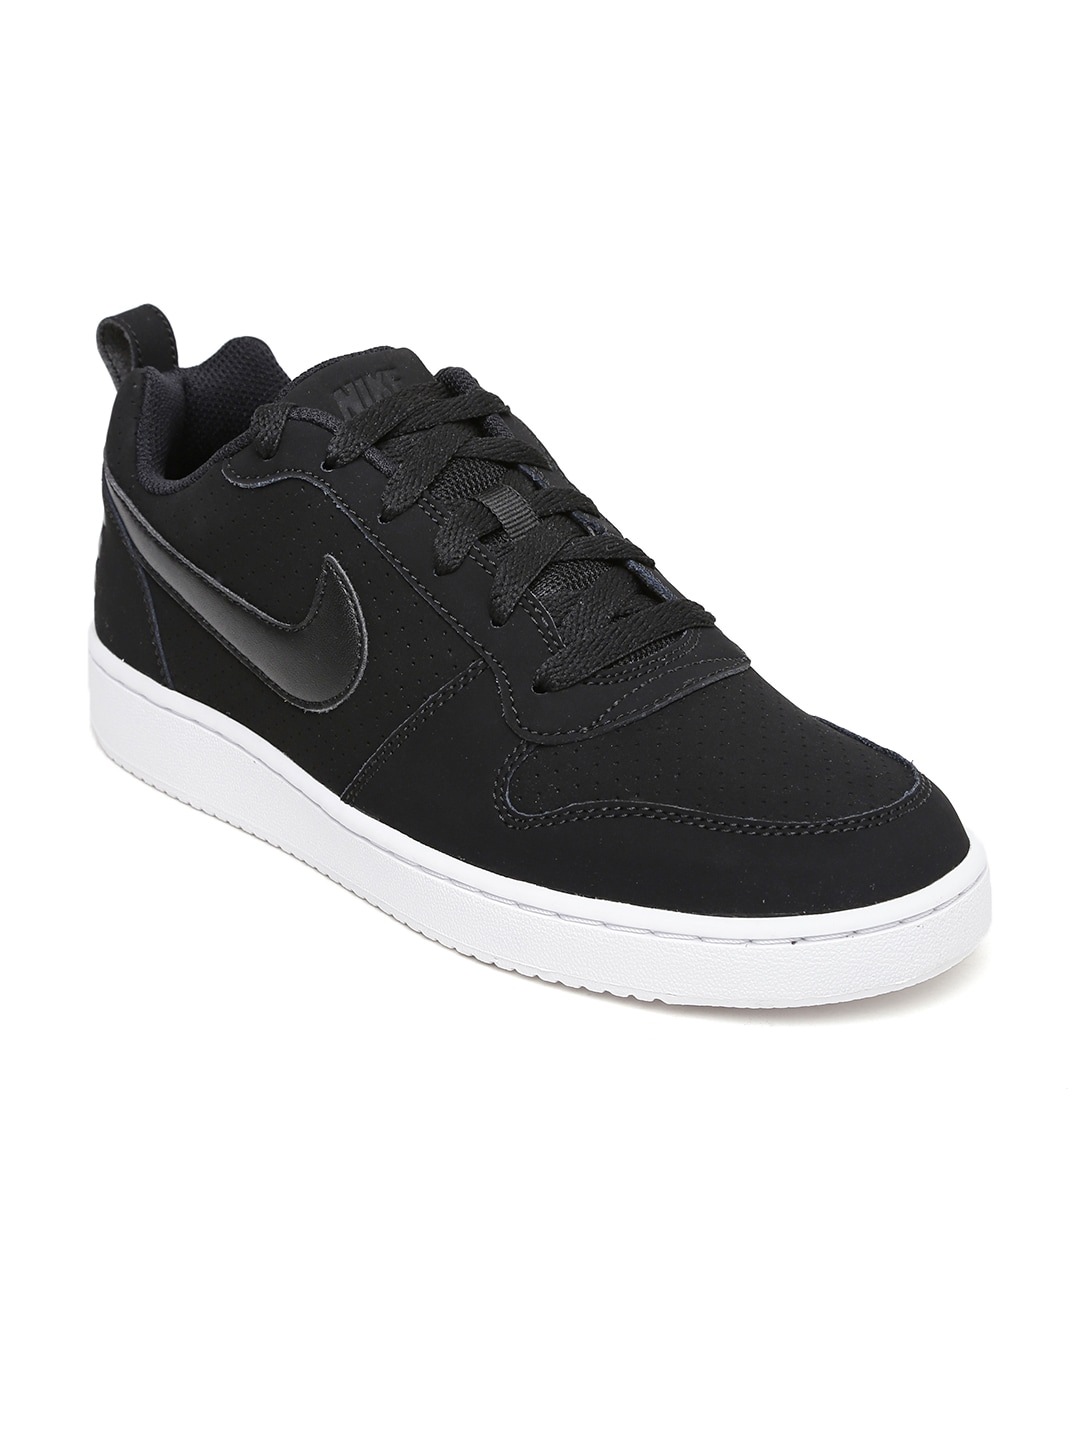 Luxury Nike Shoes For Women 2013 Casual Like Nike Men39s Running Shoes